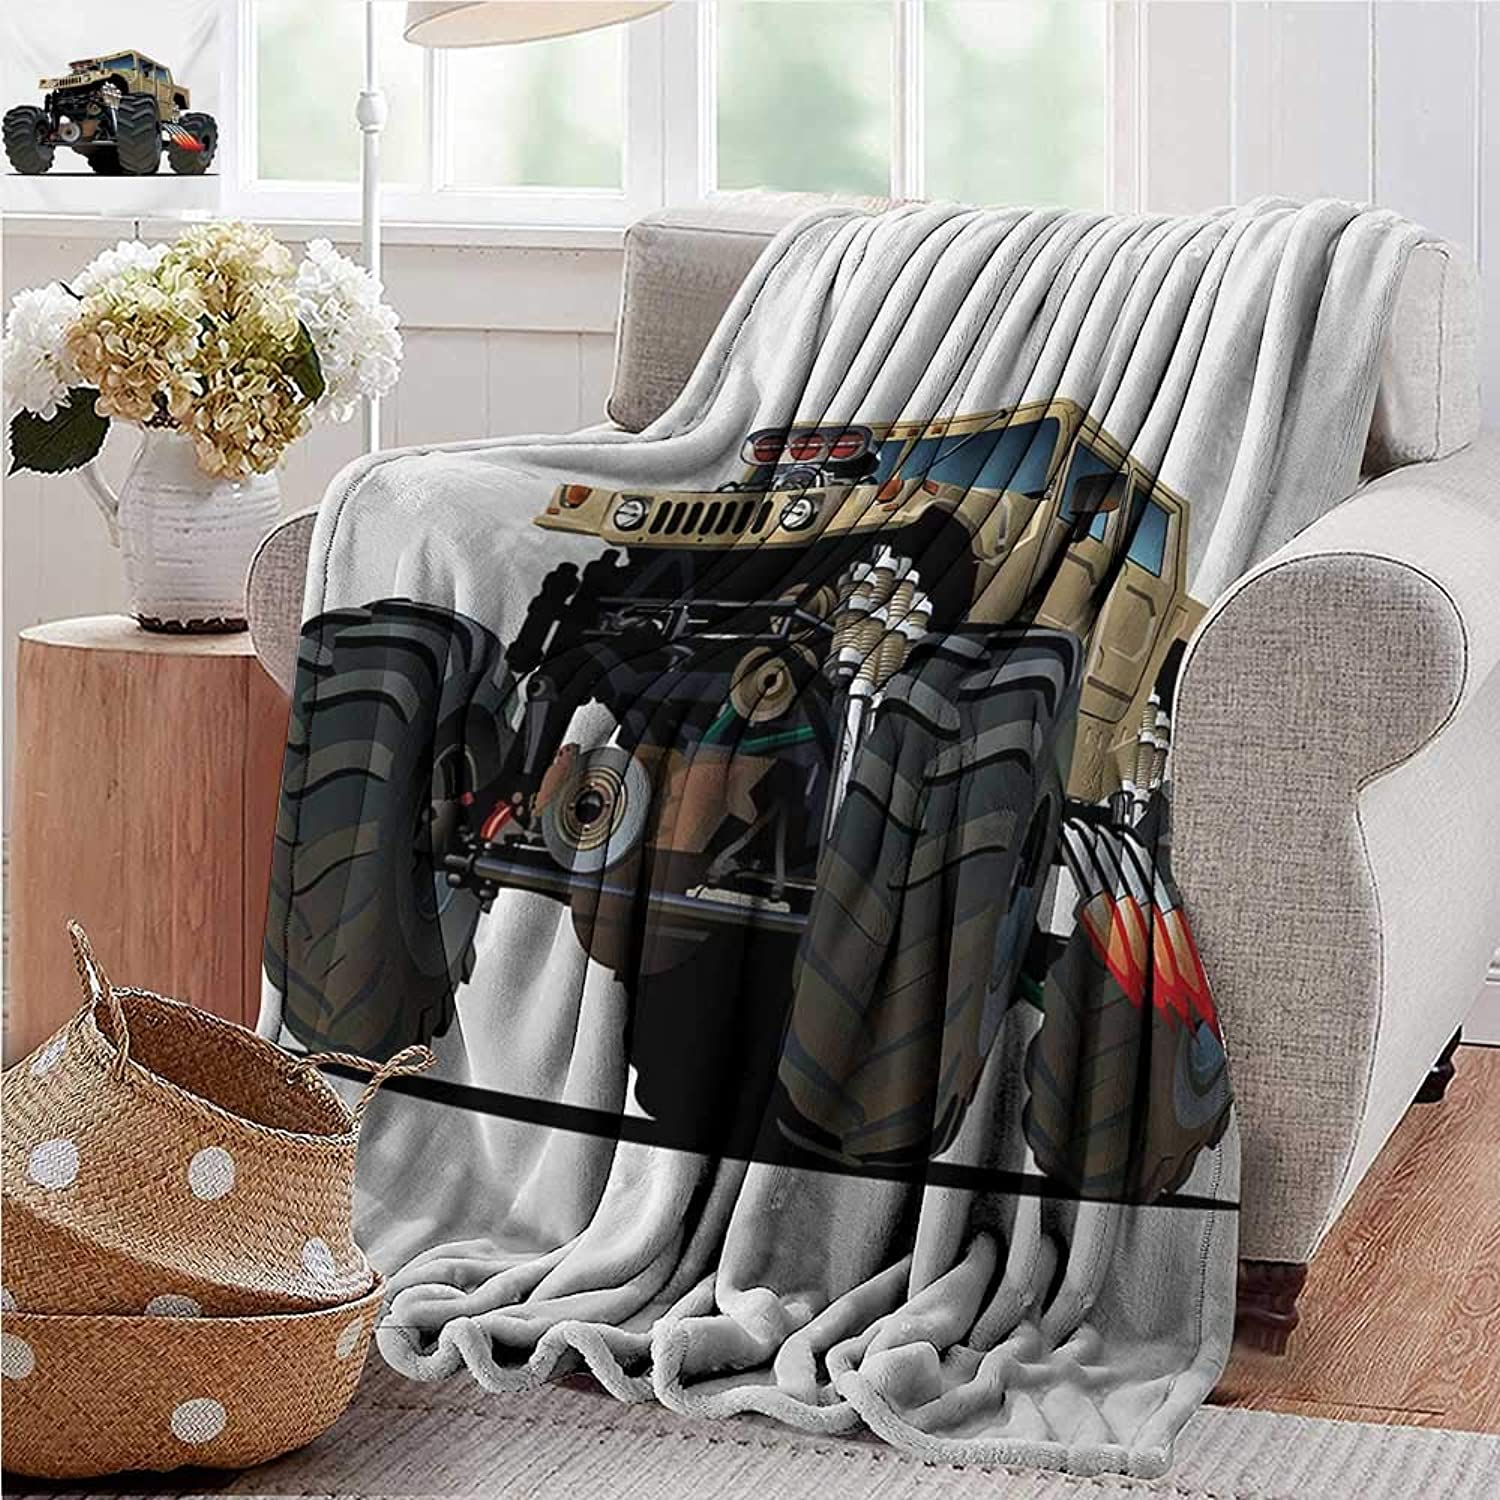 XavieraDoherty Swaddle Blanket,Cars,Extremely Large Giant Monster Pickup Truck with Huge with Oversized Tires Race Illustration,Multi,Lightweight Extra Soft Skin Fabric,Not Allergic 50 x60